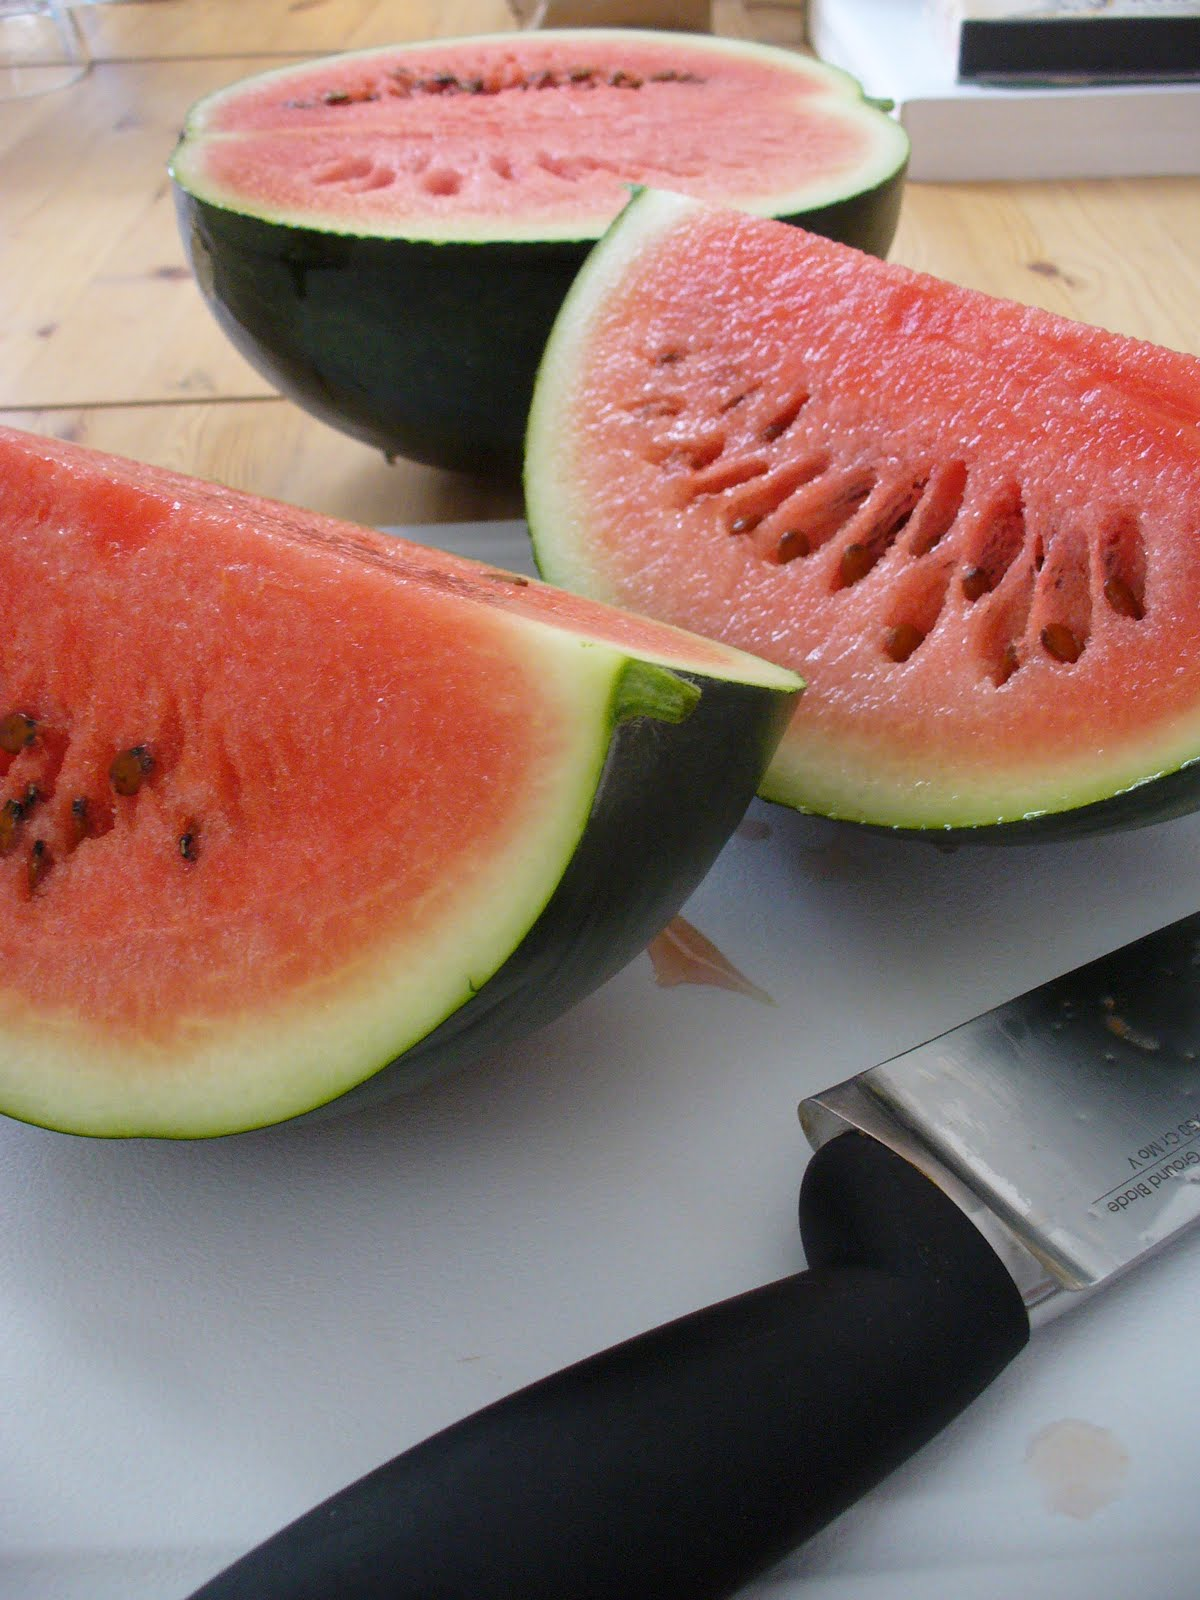 Watermelon Recipes  Allrecipescom